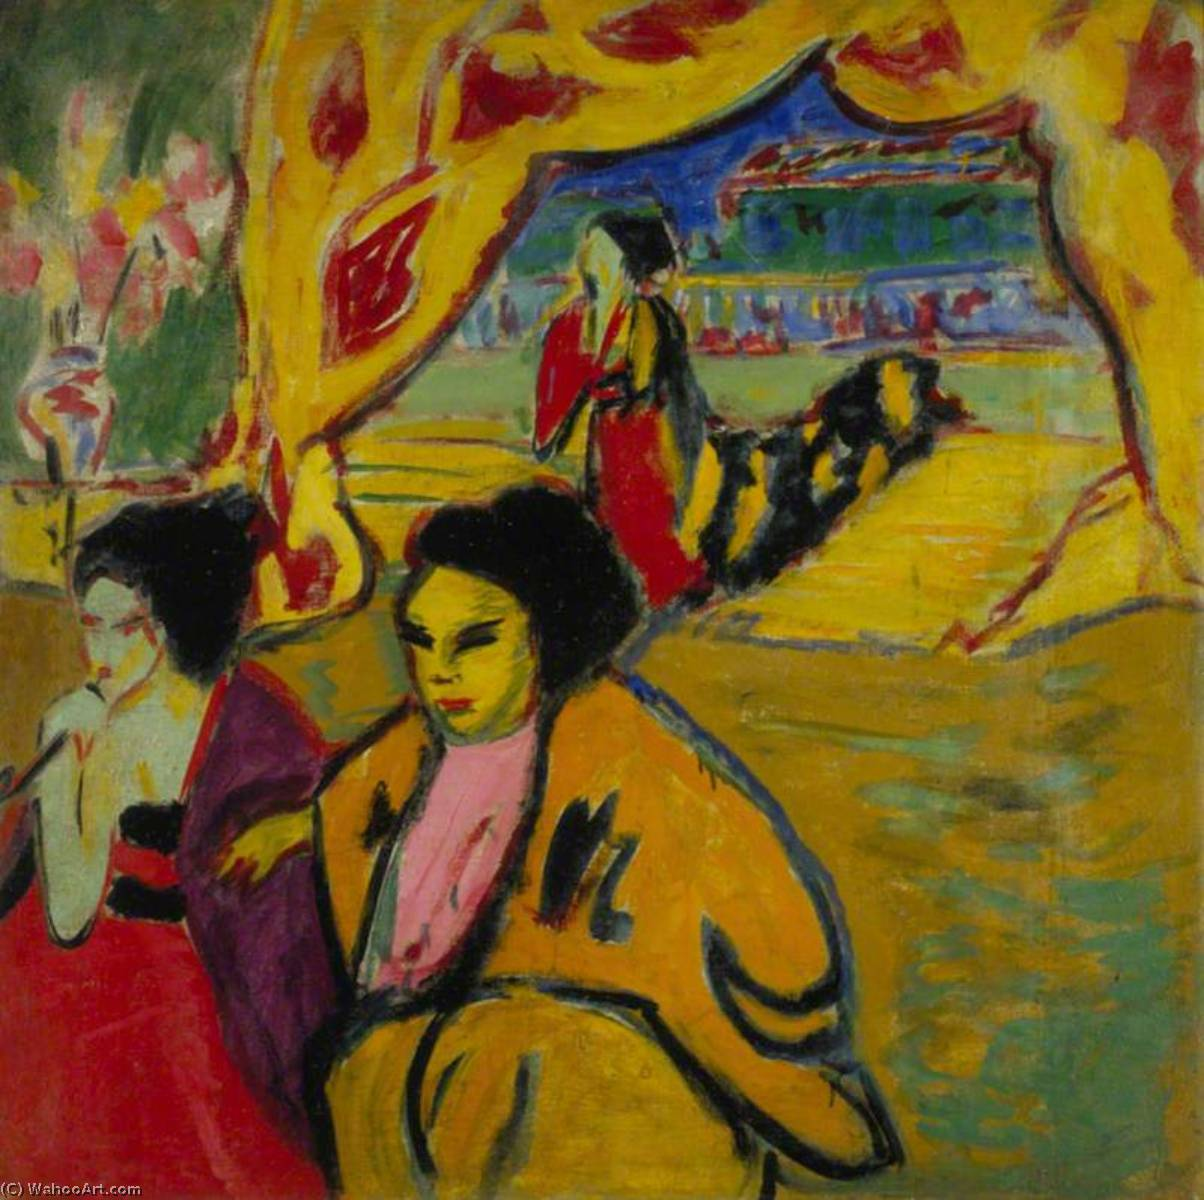 Japanisches Theater (Japanese Theatre), 1909 by Ernst Ludwig Kirchner (1880-1938, Germany) | WahooArt.com